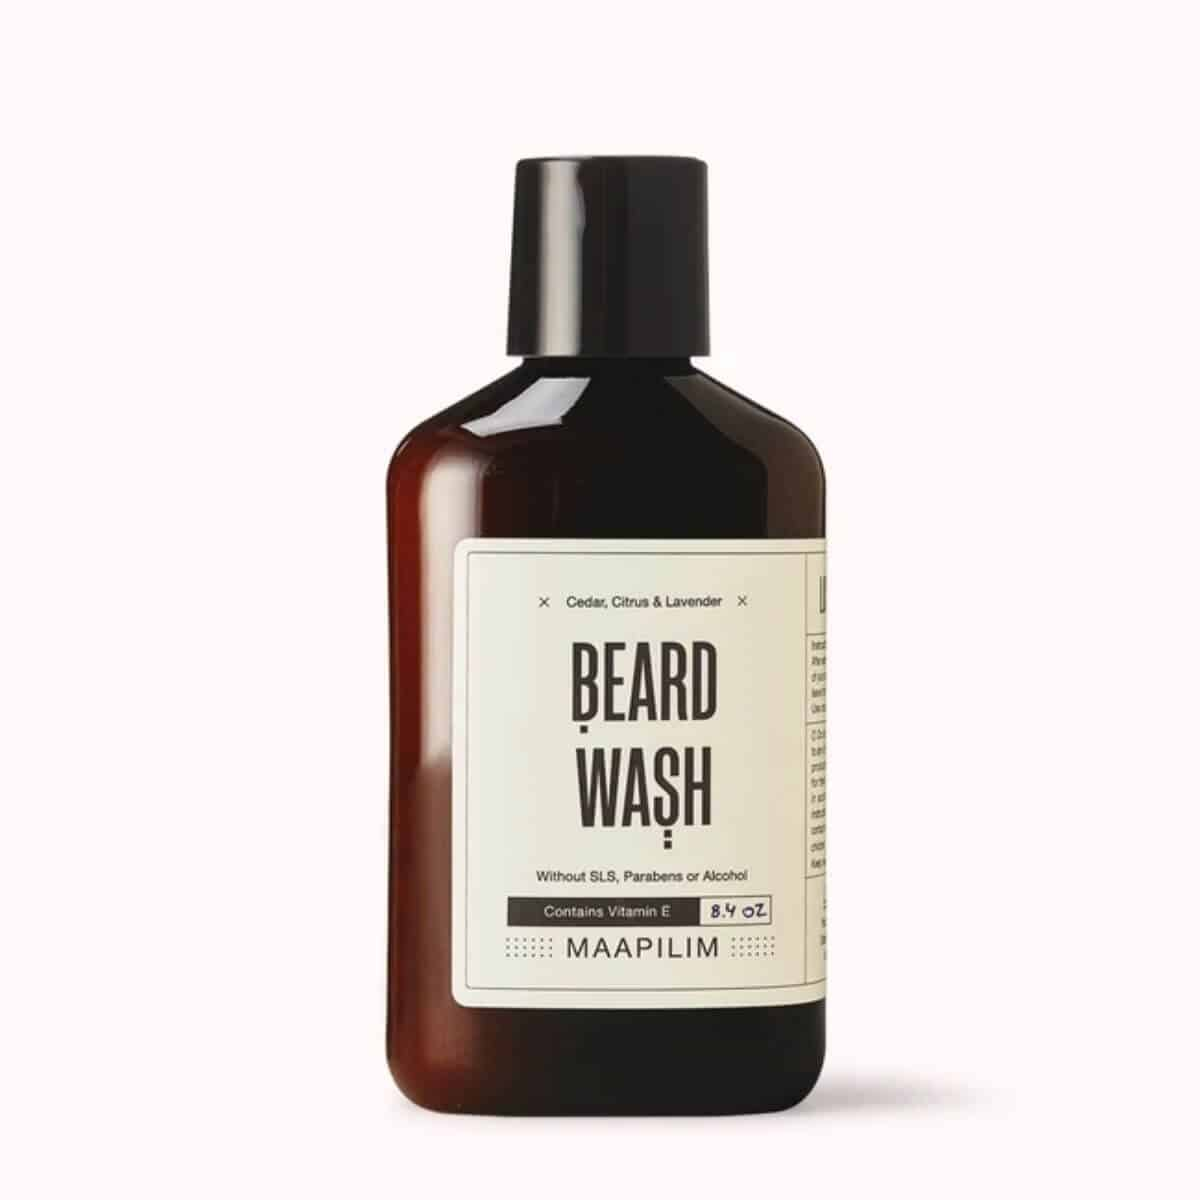 Amber bottle of beard wash.